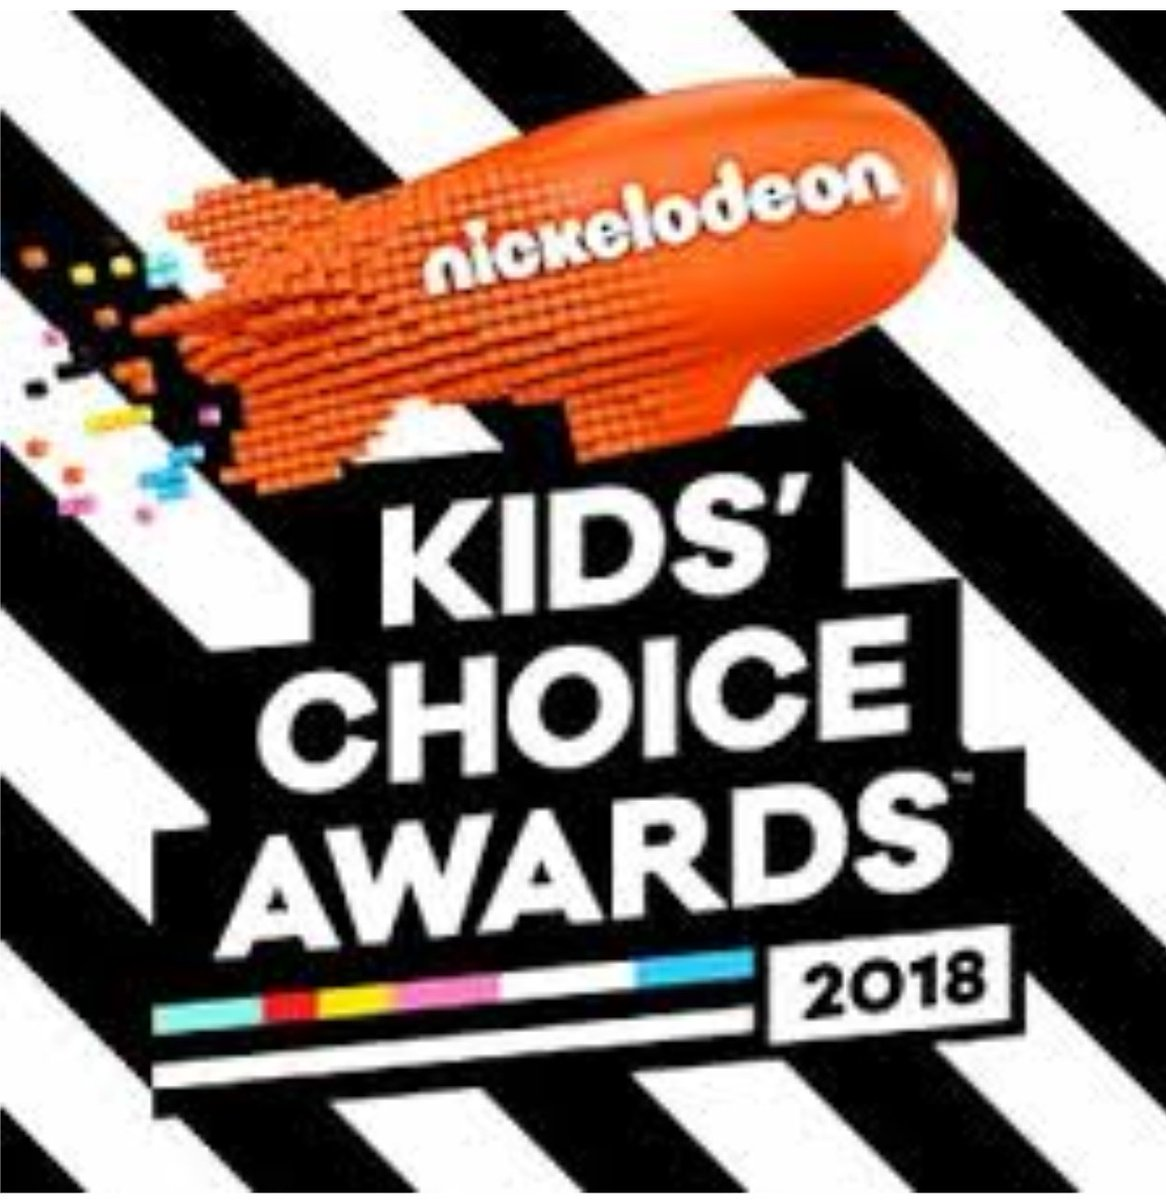 Mees Kees de serie genomineerd voor Kid's Choice Award!